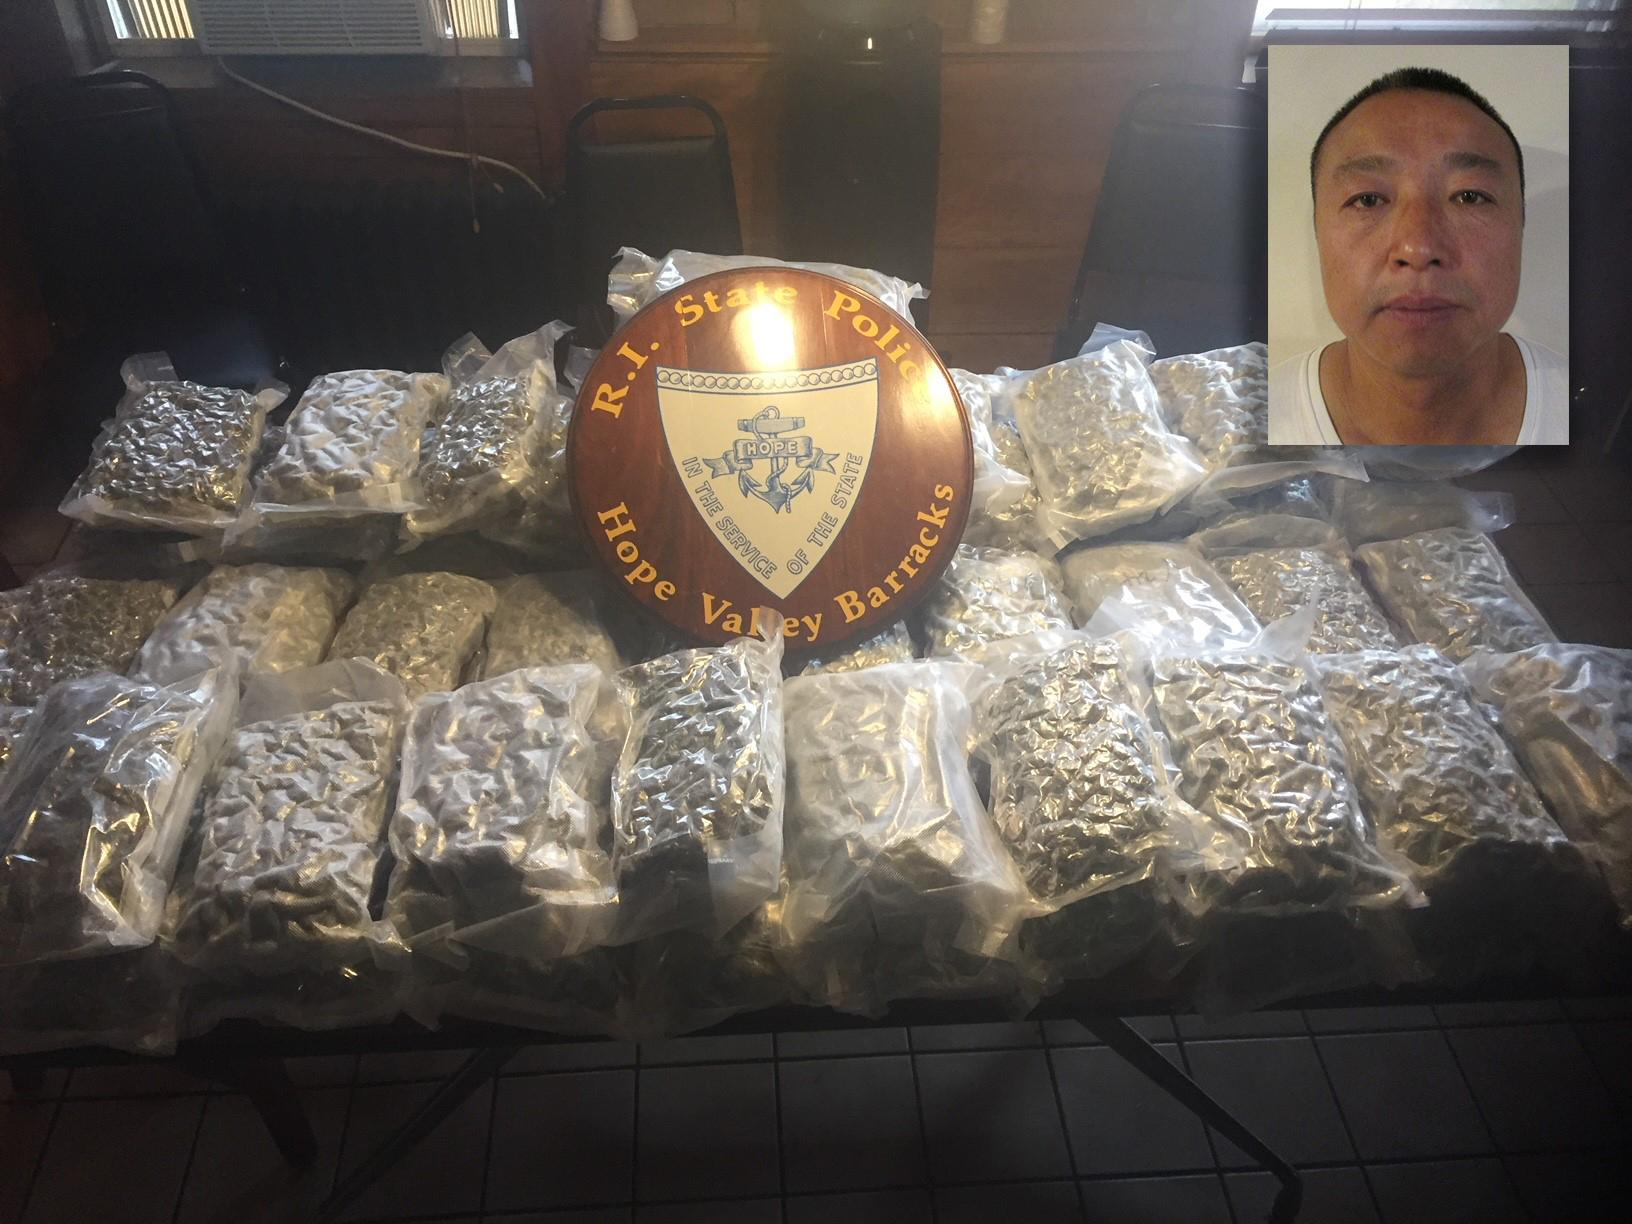 Rhode Island State Police arrested Xia Ofeng Wang after they seized an estimated $60,000 worth of marijuana during traffic stop in West Greenwich. (Police photos)